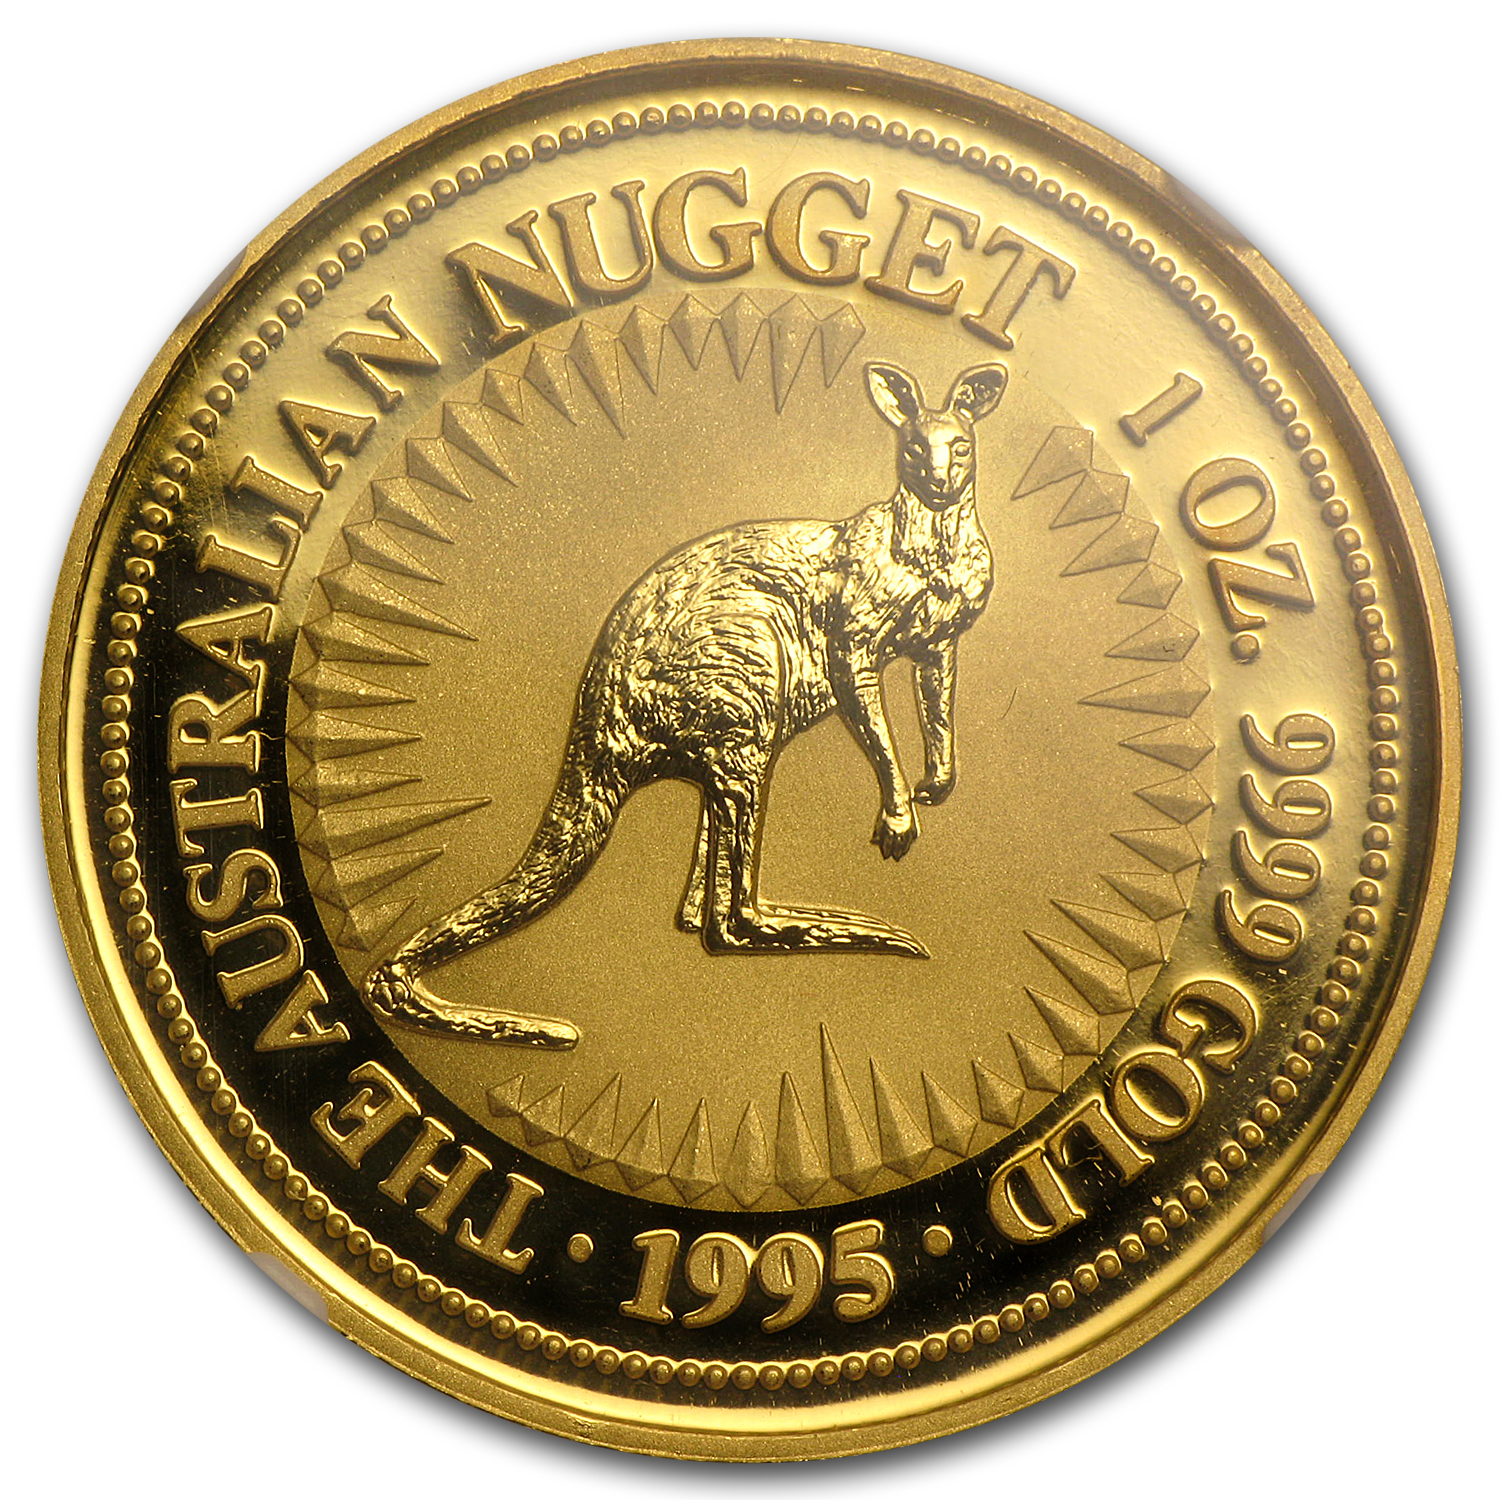 1995 1 oz Australian Gold Nugget NGC MS-69